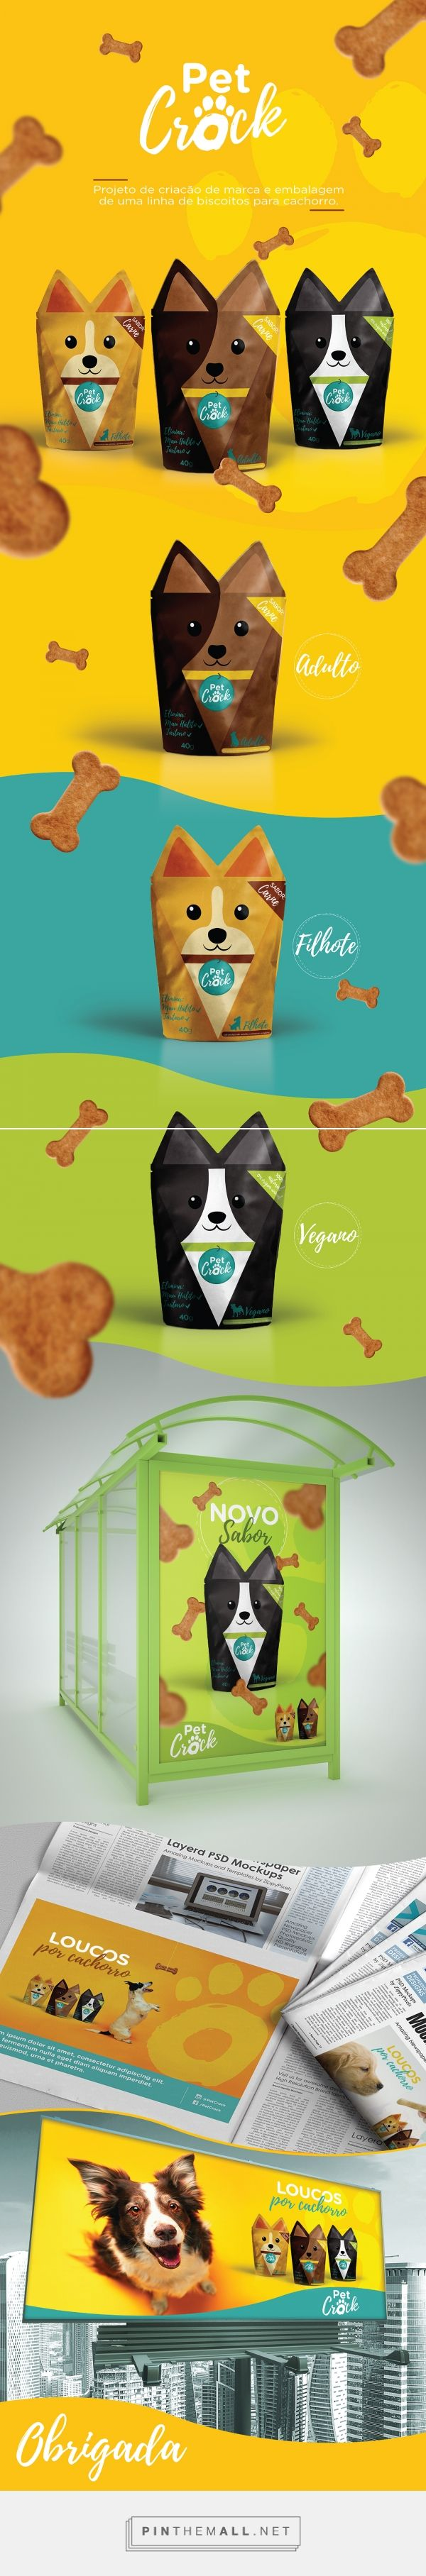 Pet Crock dog treats by Jessica Santos. Source: Behance. #SFields99 #packaging #design